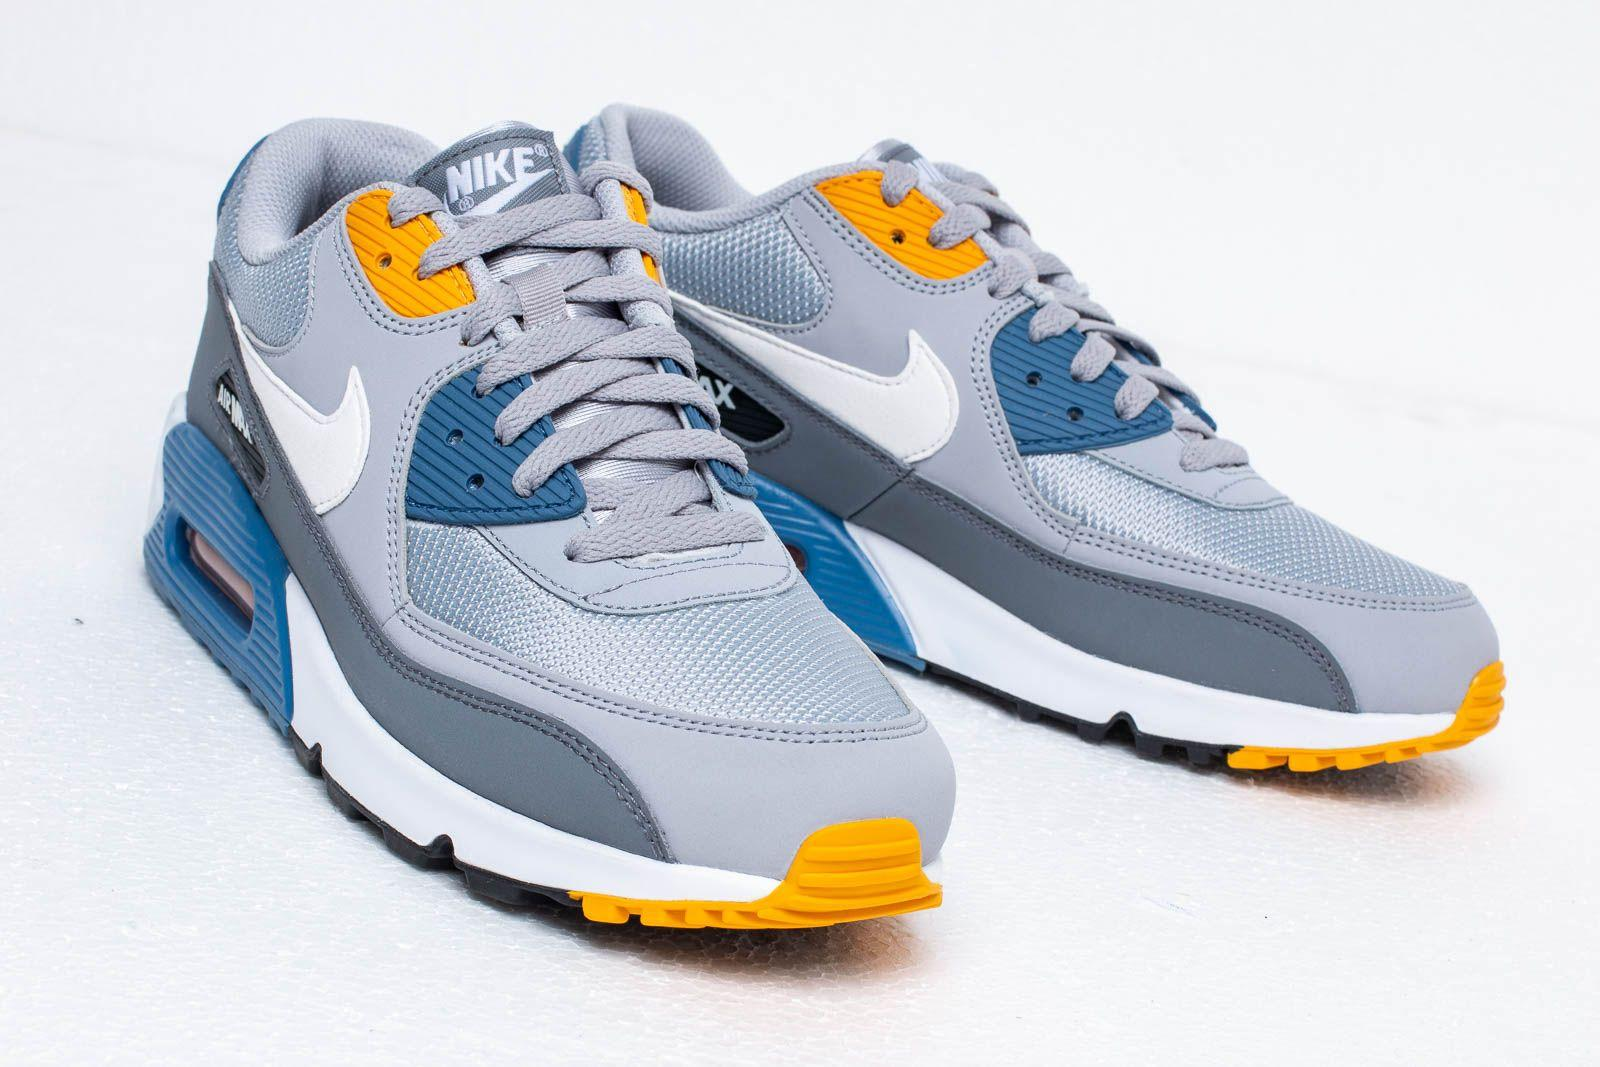 Nike - Gray Air Max 90 Essential Wolf Grey  White-indigo Storm for Men.  View fullscreen 5f0c454a6a6e8